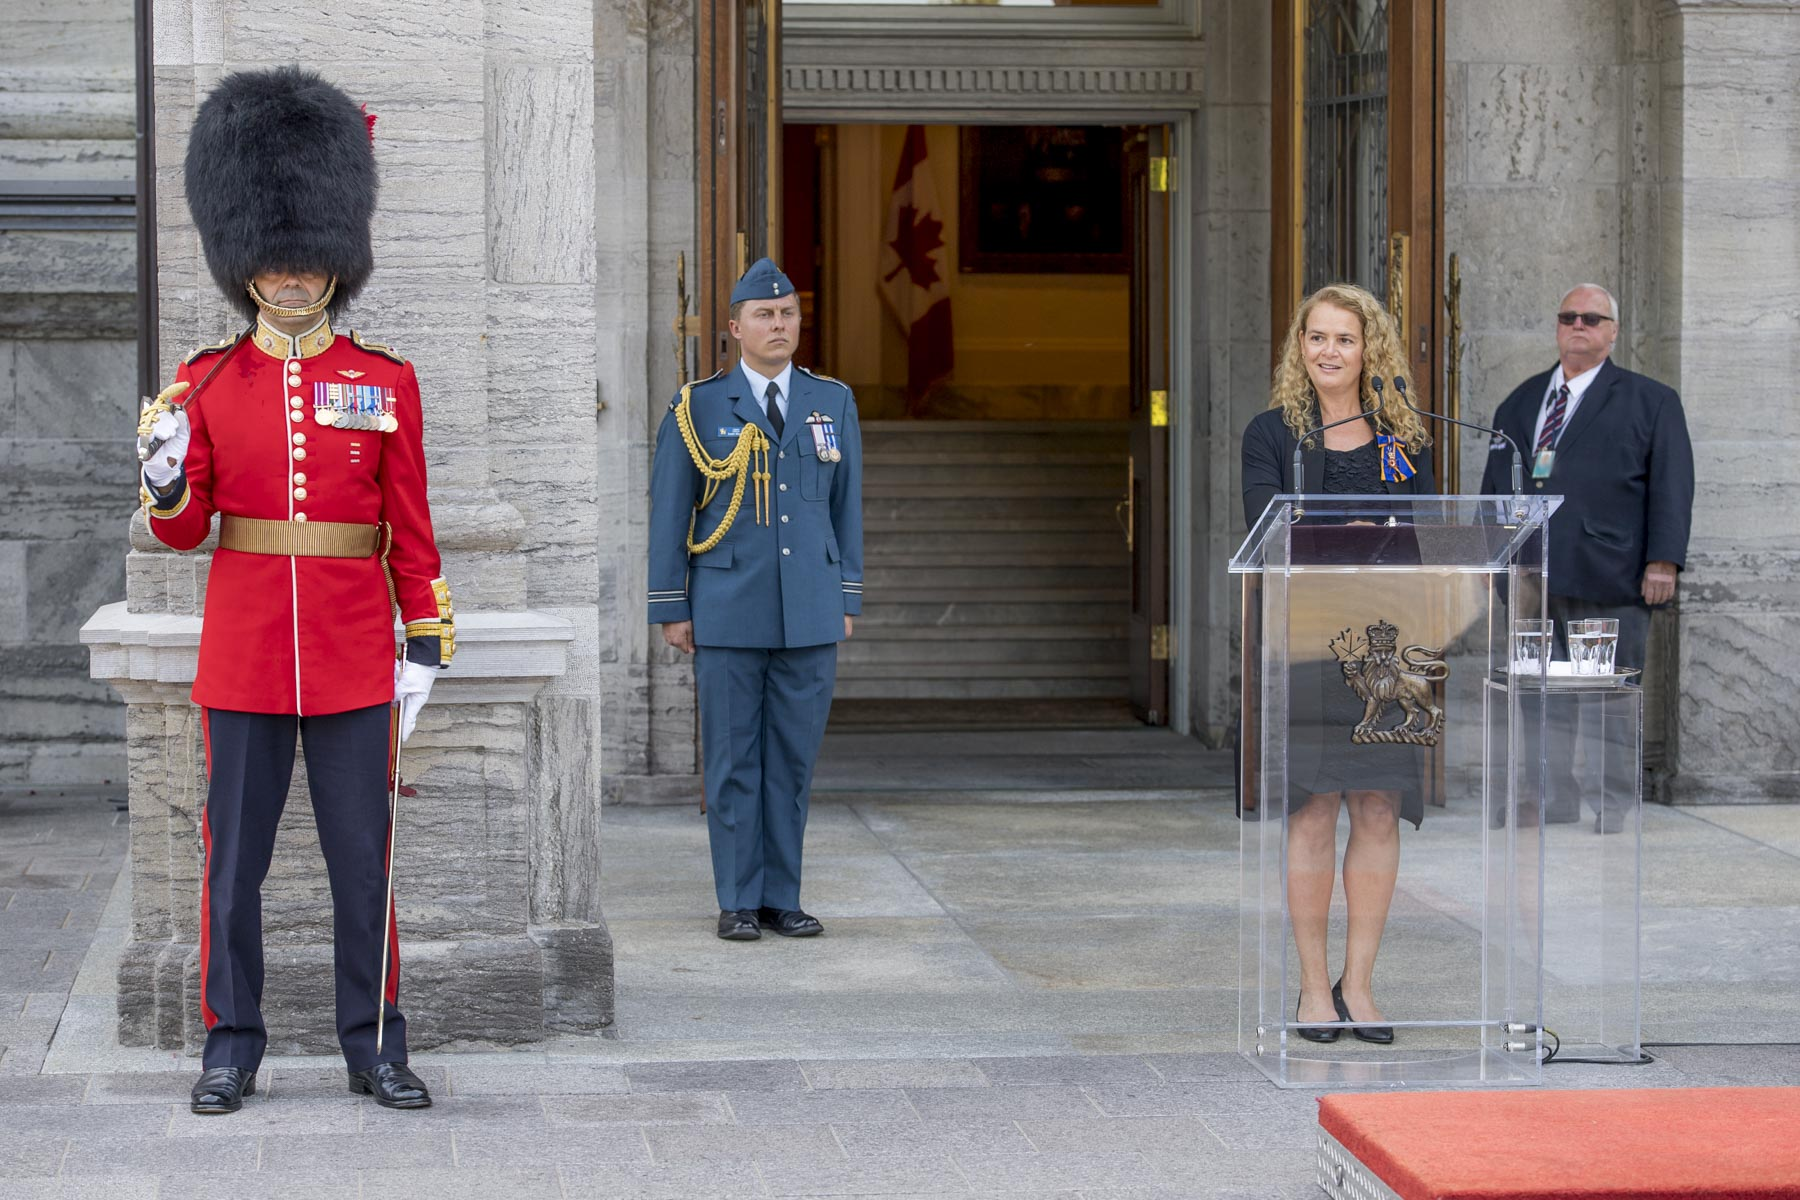 Once the inspection completed, the Governor General addressed the Ceremonial Guard and thanked them for their devoted service during the summer season.